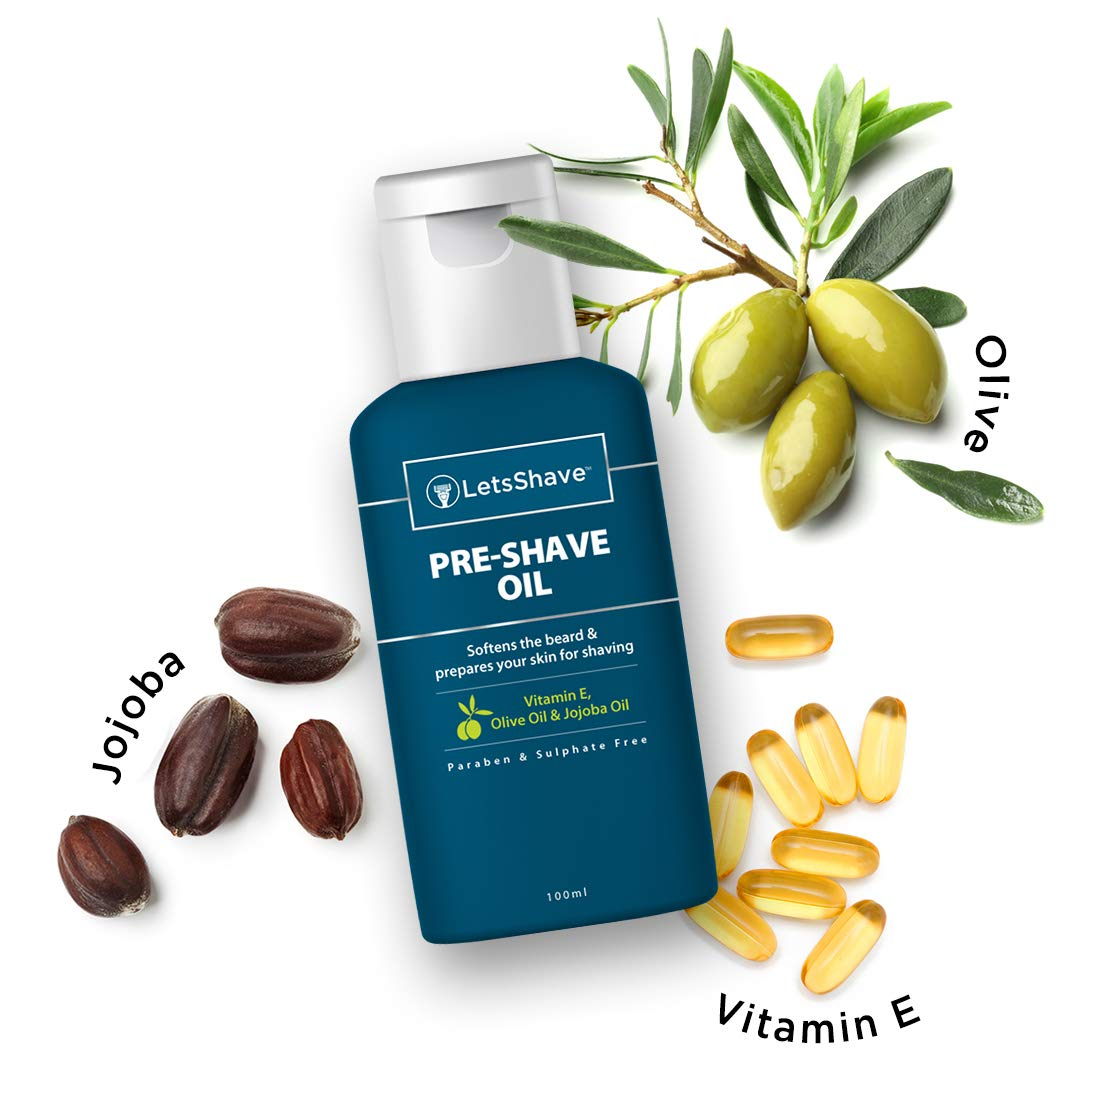 LetsShave Pre Shave Oil with 100% Natural Essential Oil and Vitamin E for an irritation-free shave -100ml